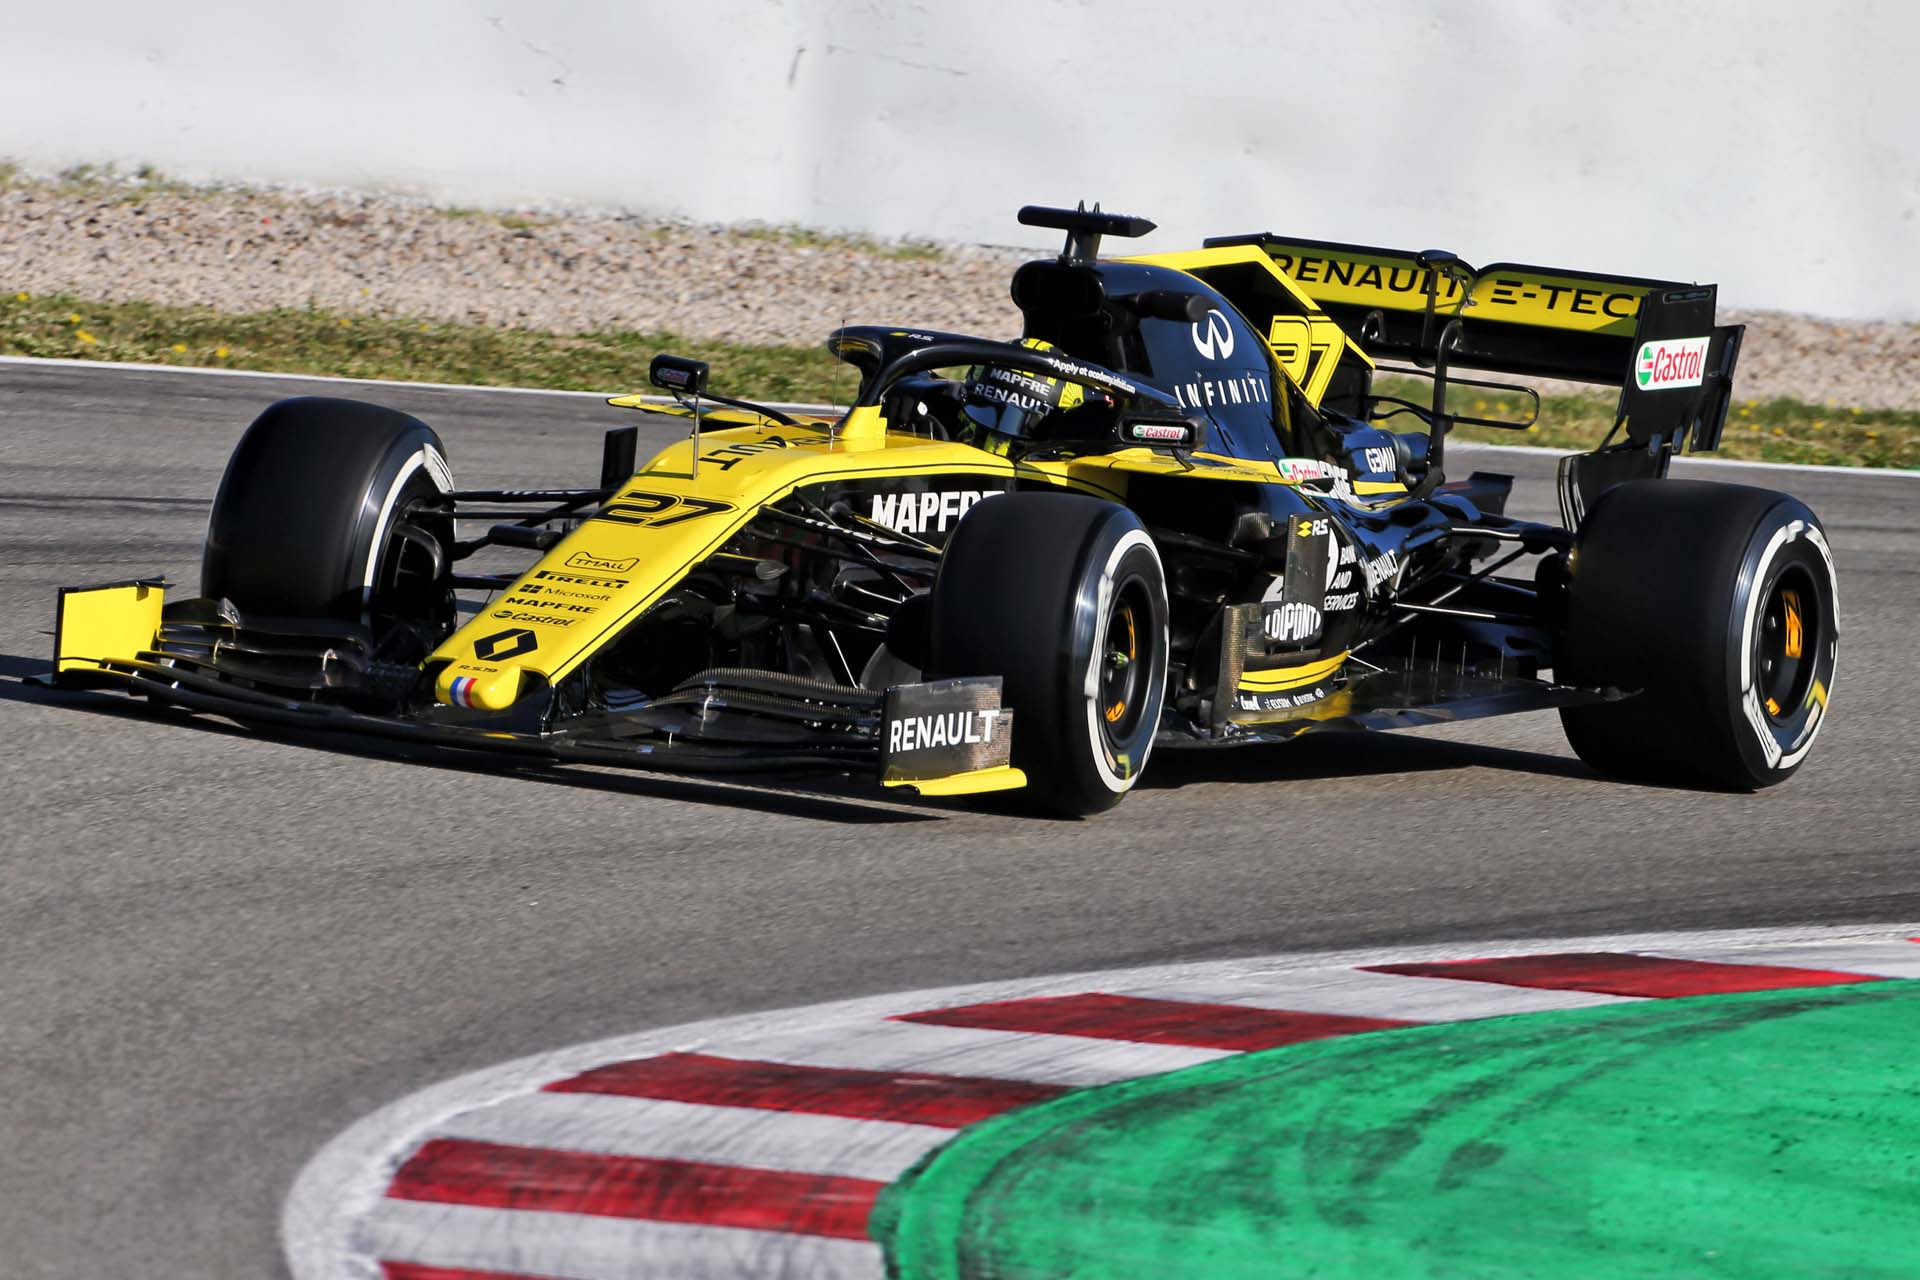 Motor Racing - Formula One Testing - In Season Test - Day 1 - Barcelona, Spain